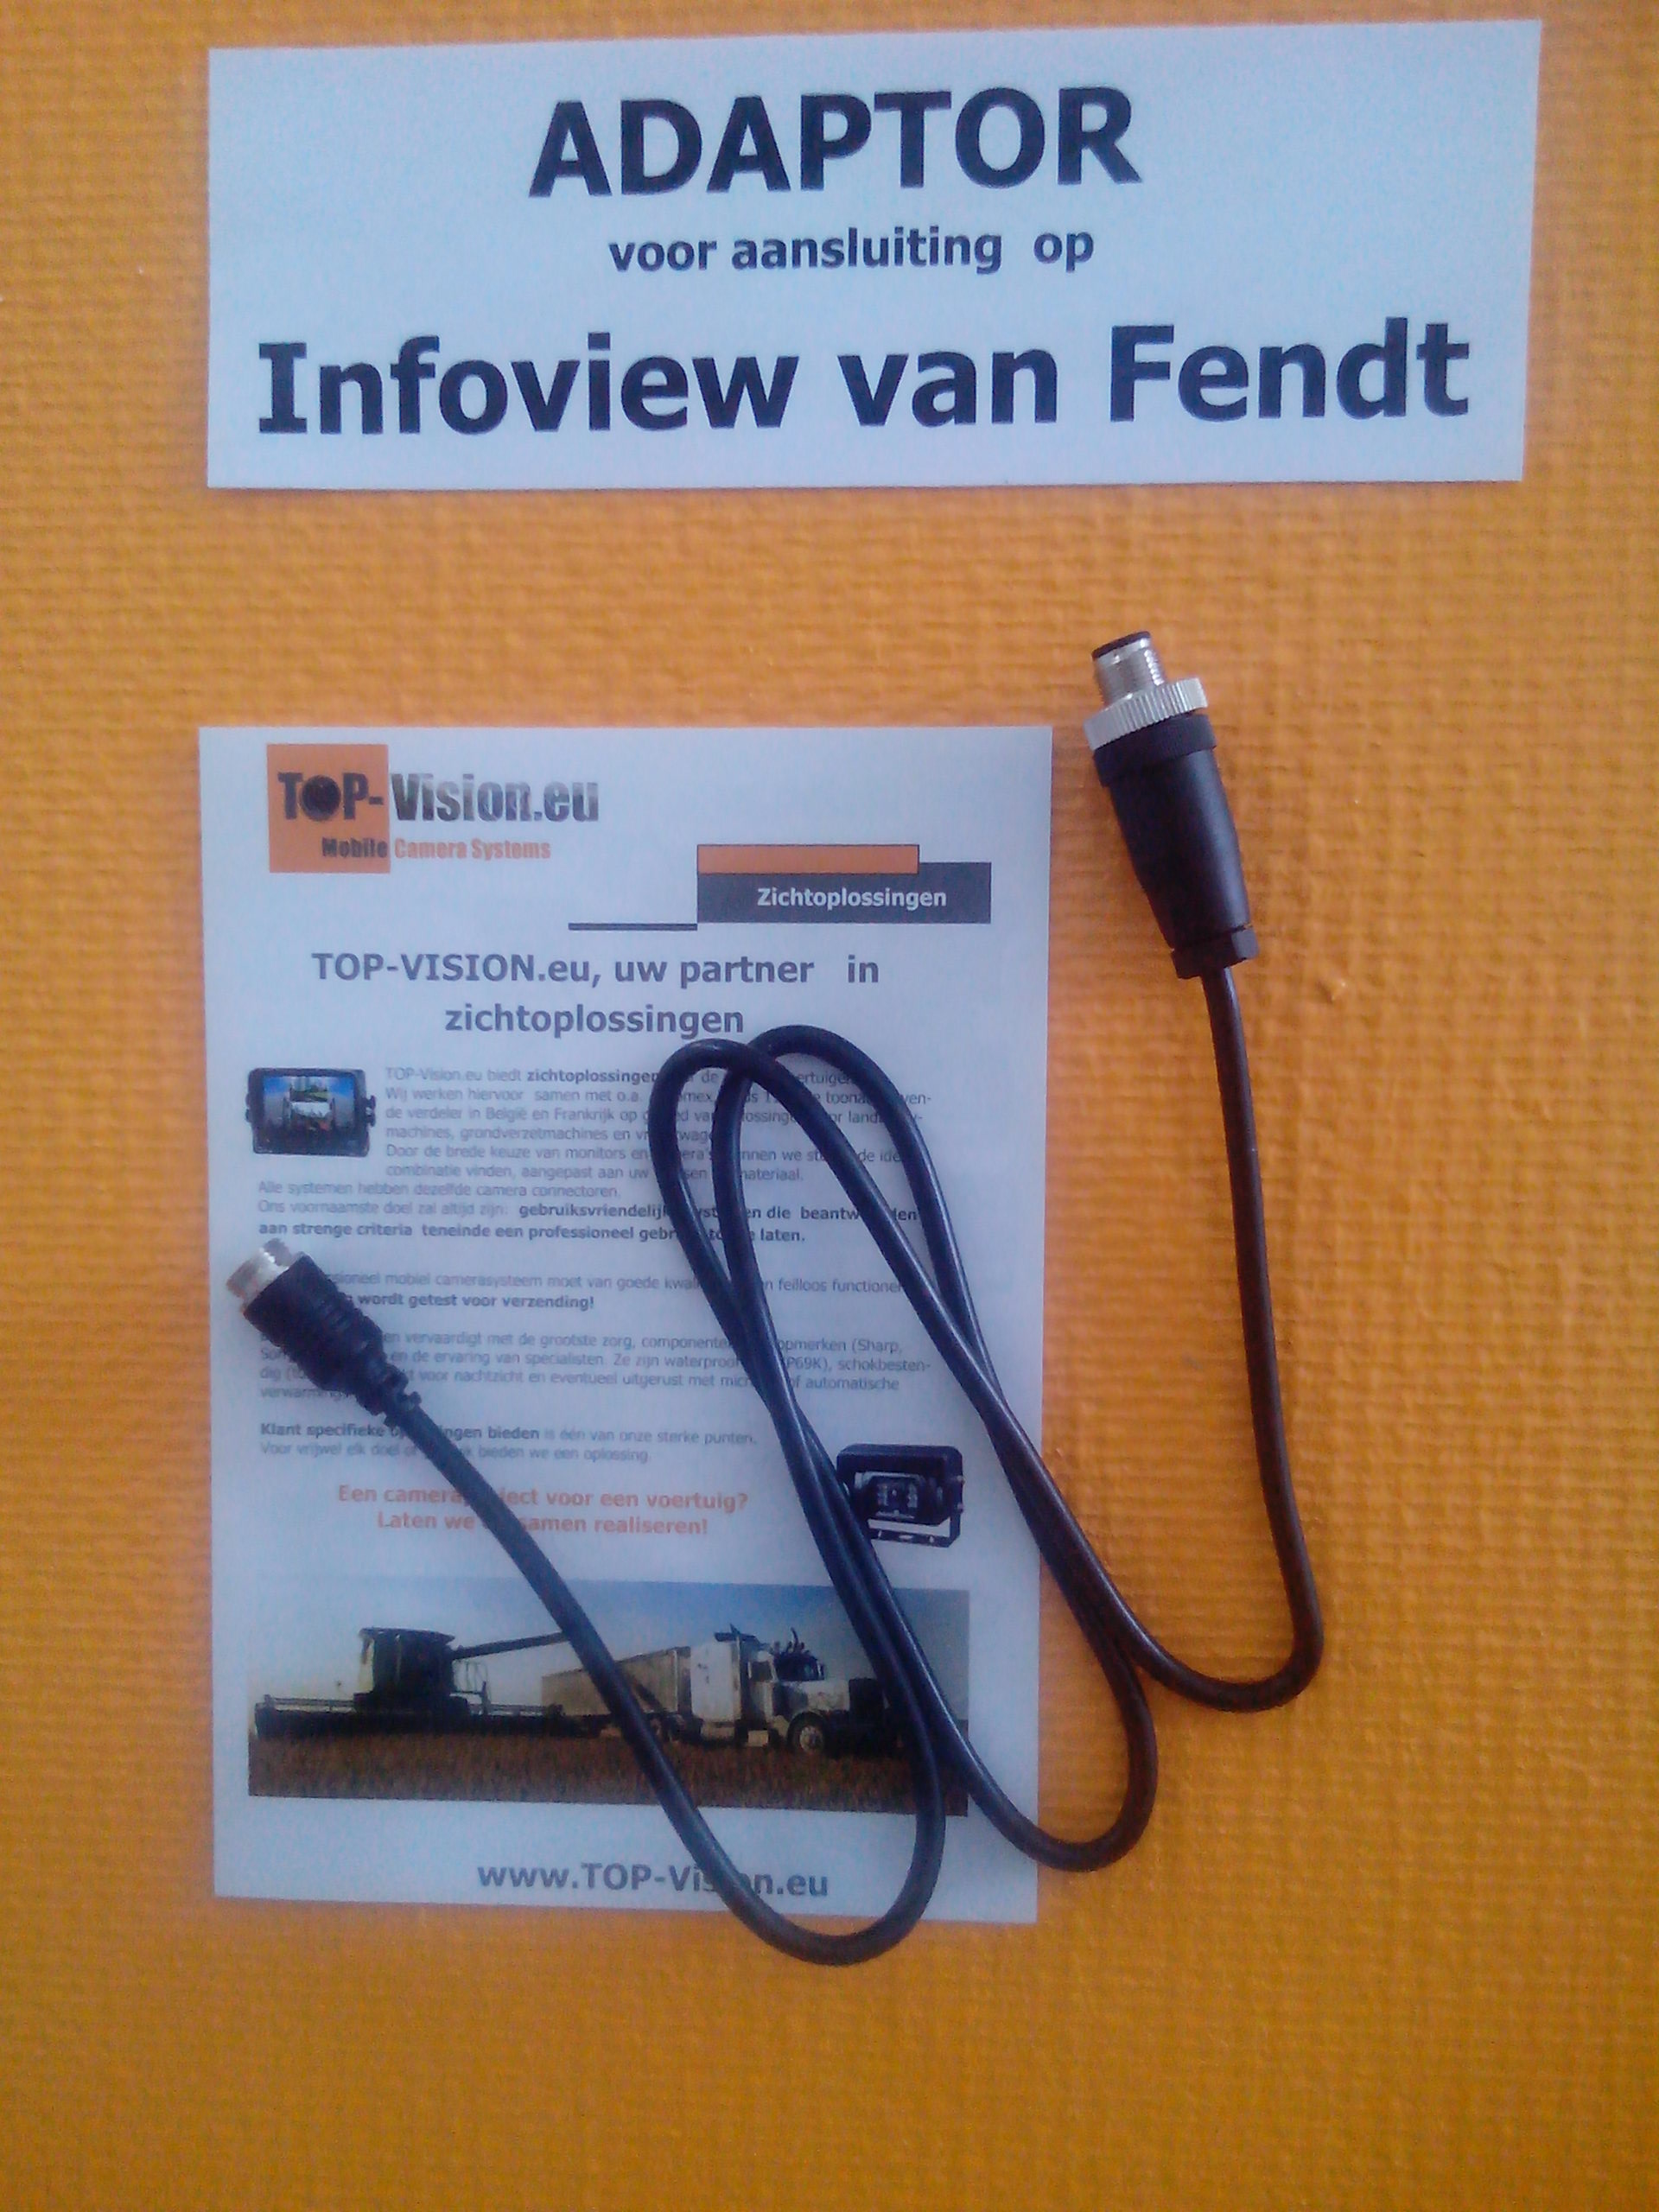 Fendt Infoview adaptor2